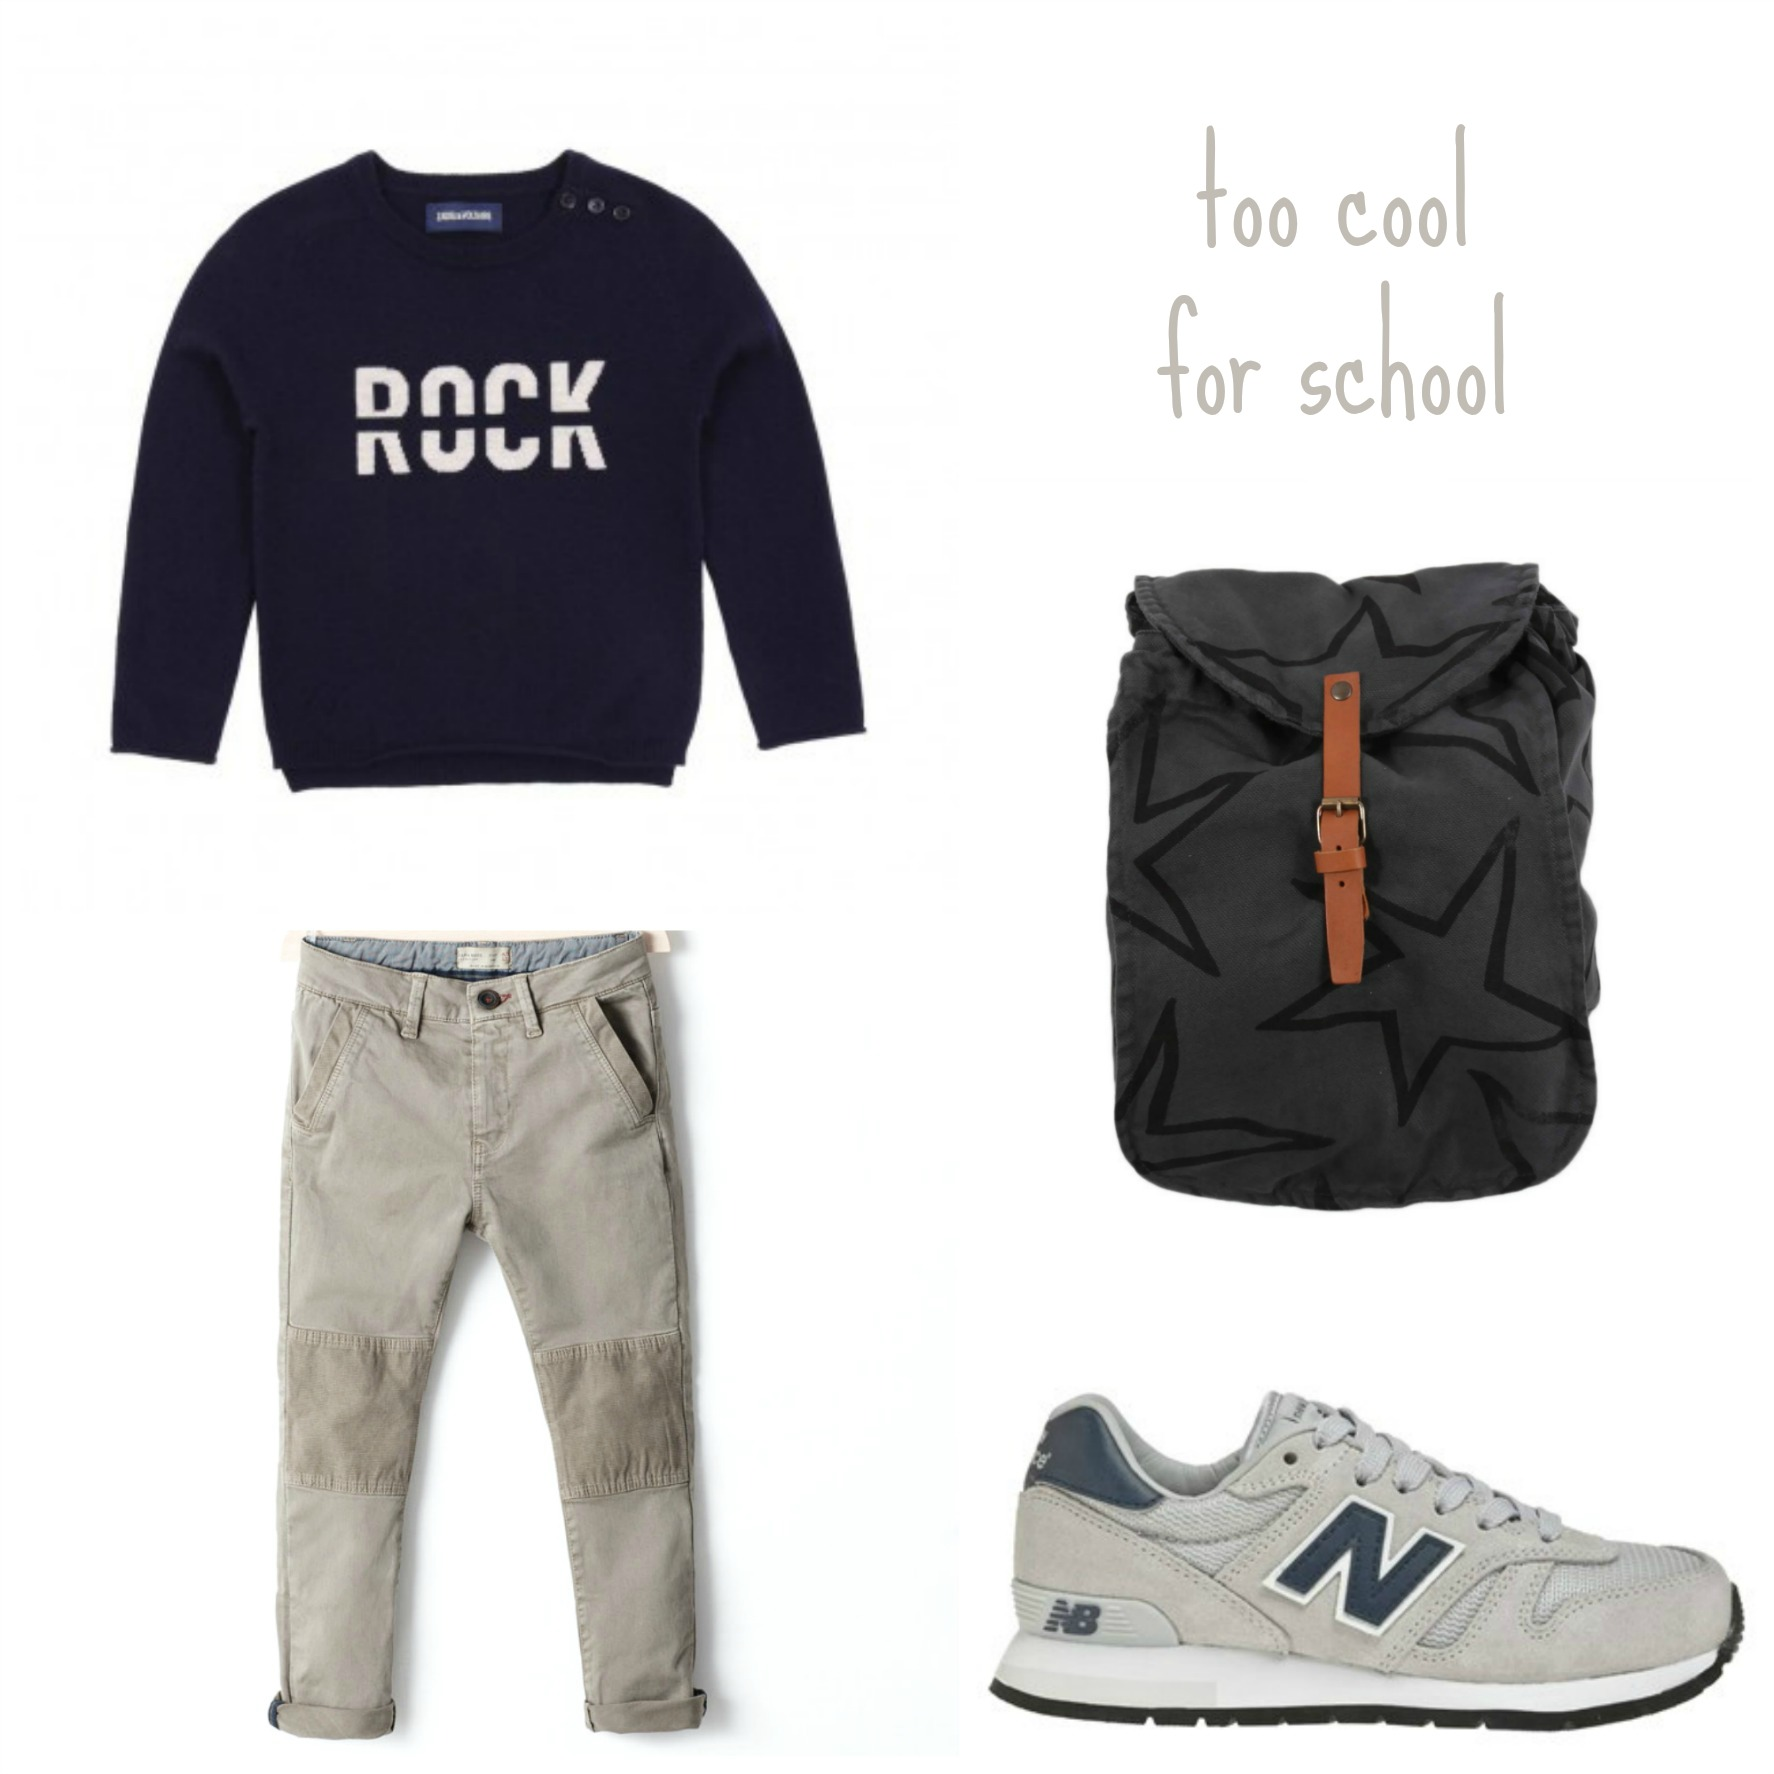 To cool for school - Boys